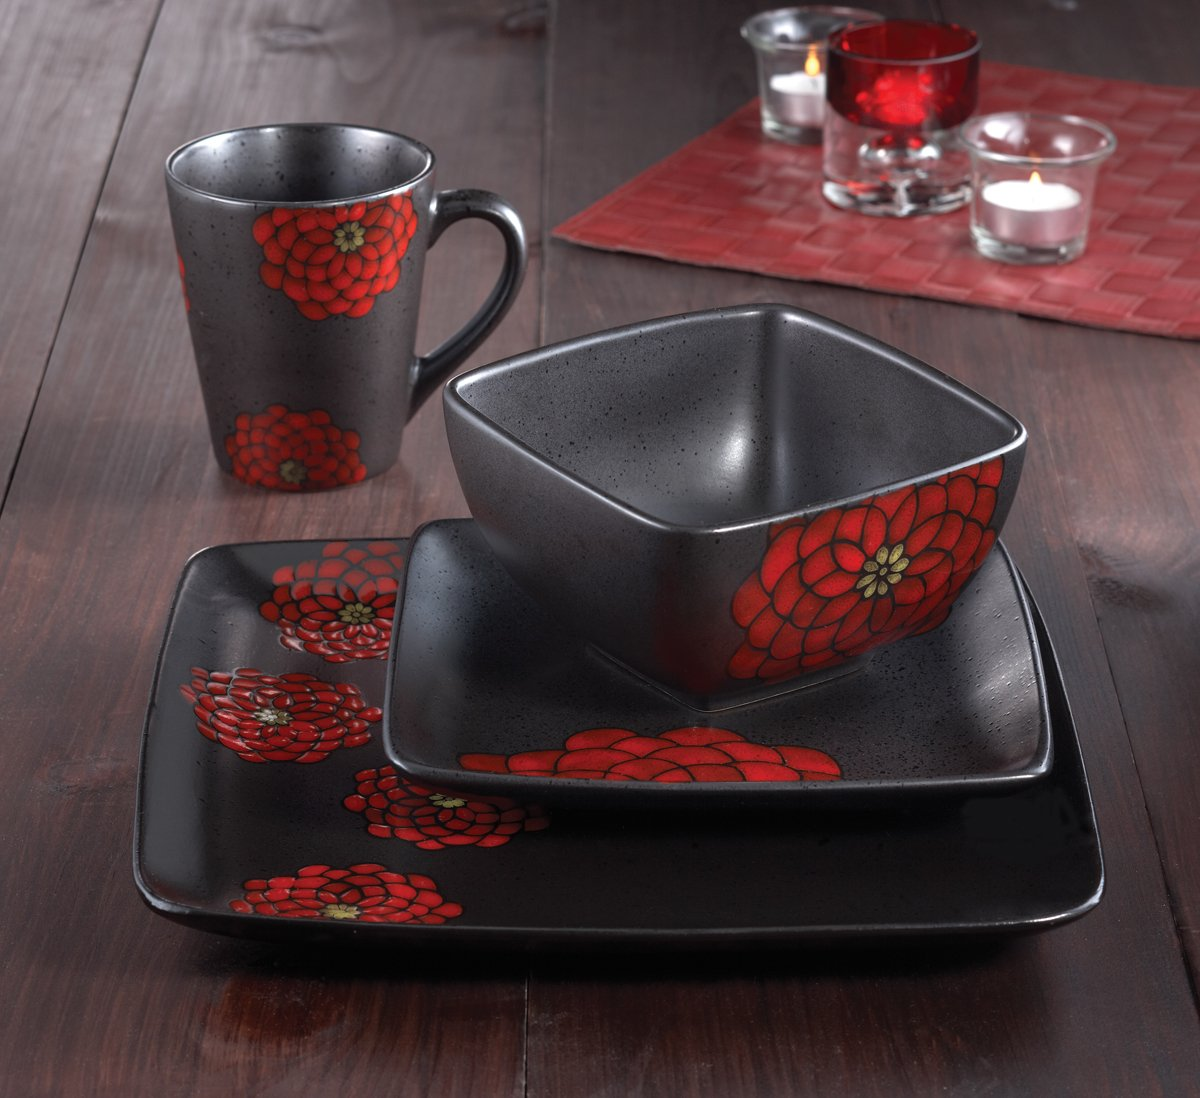 & Amazon.com | Asiana Red 16-Piece Dinnerware Set: Dinnerware Sets